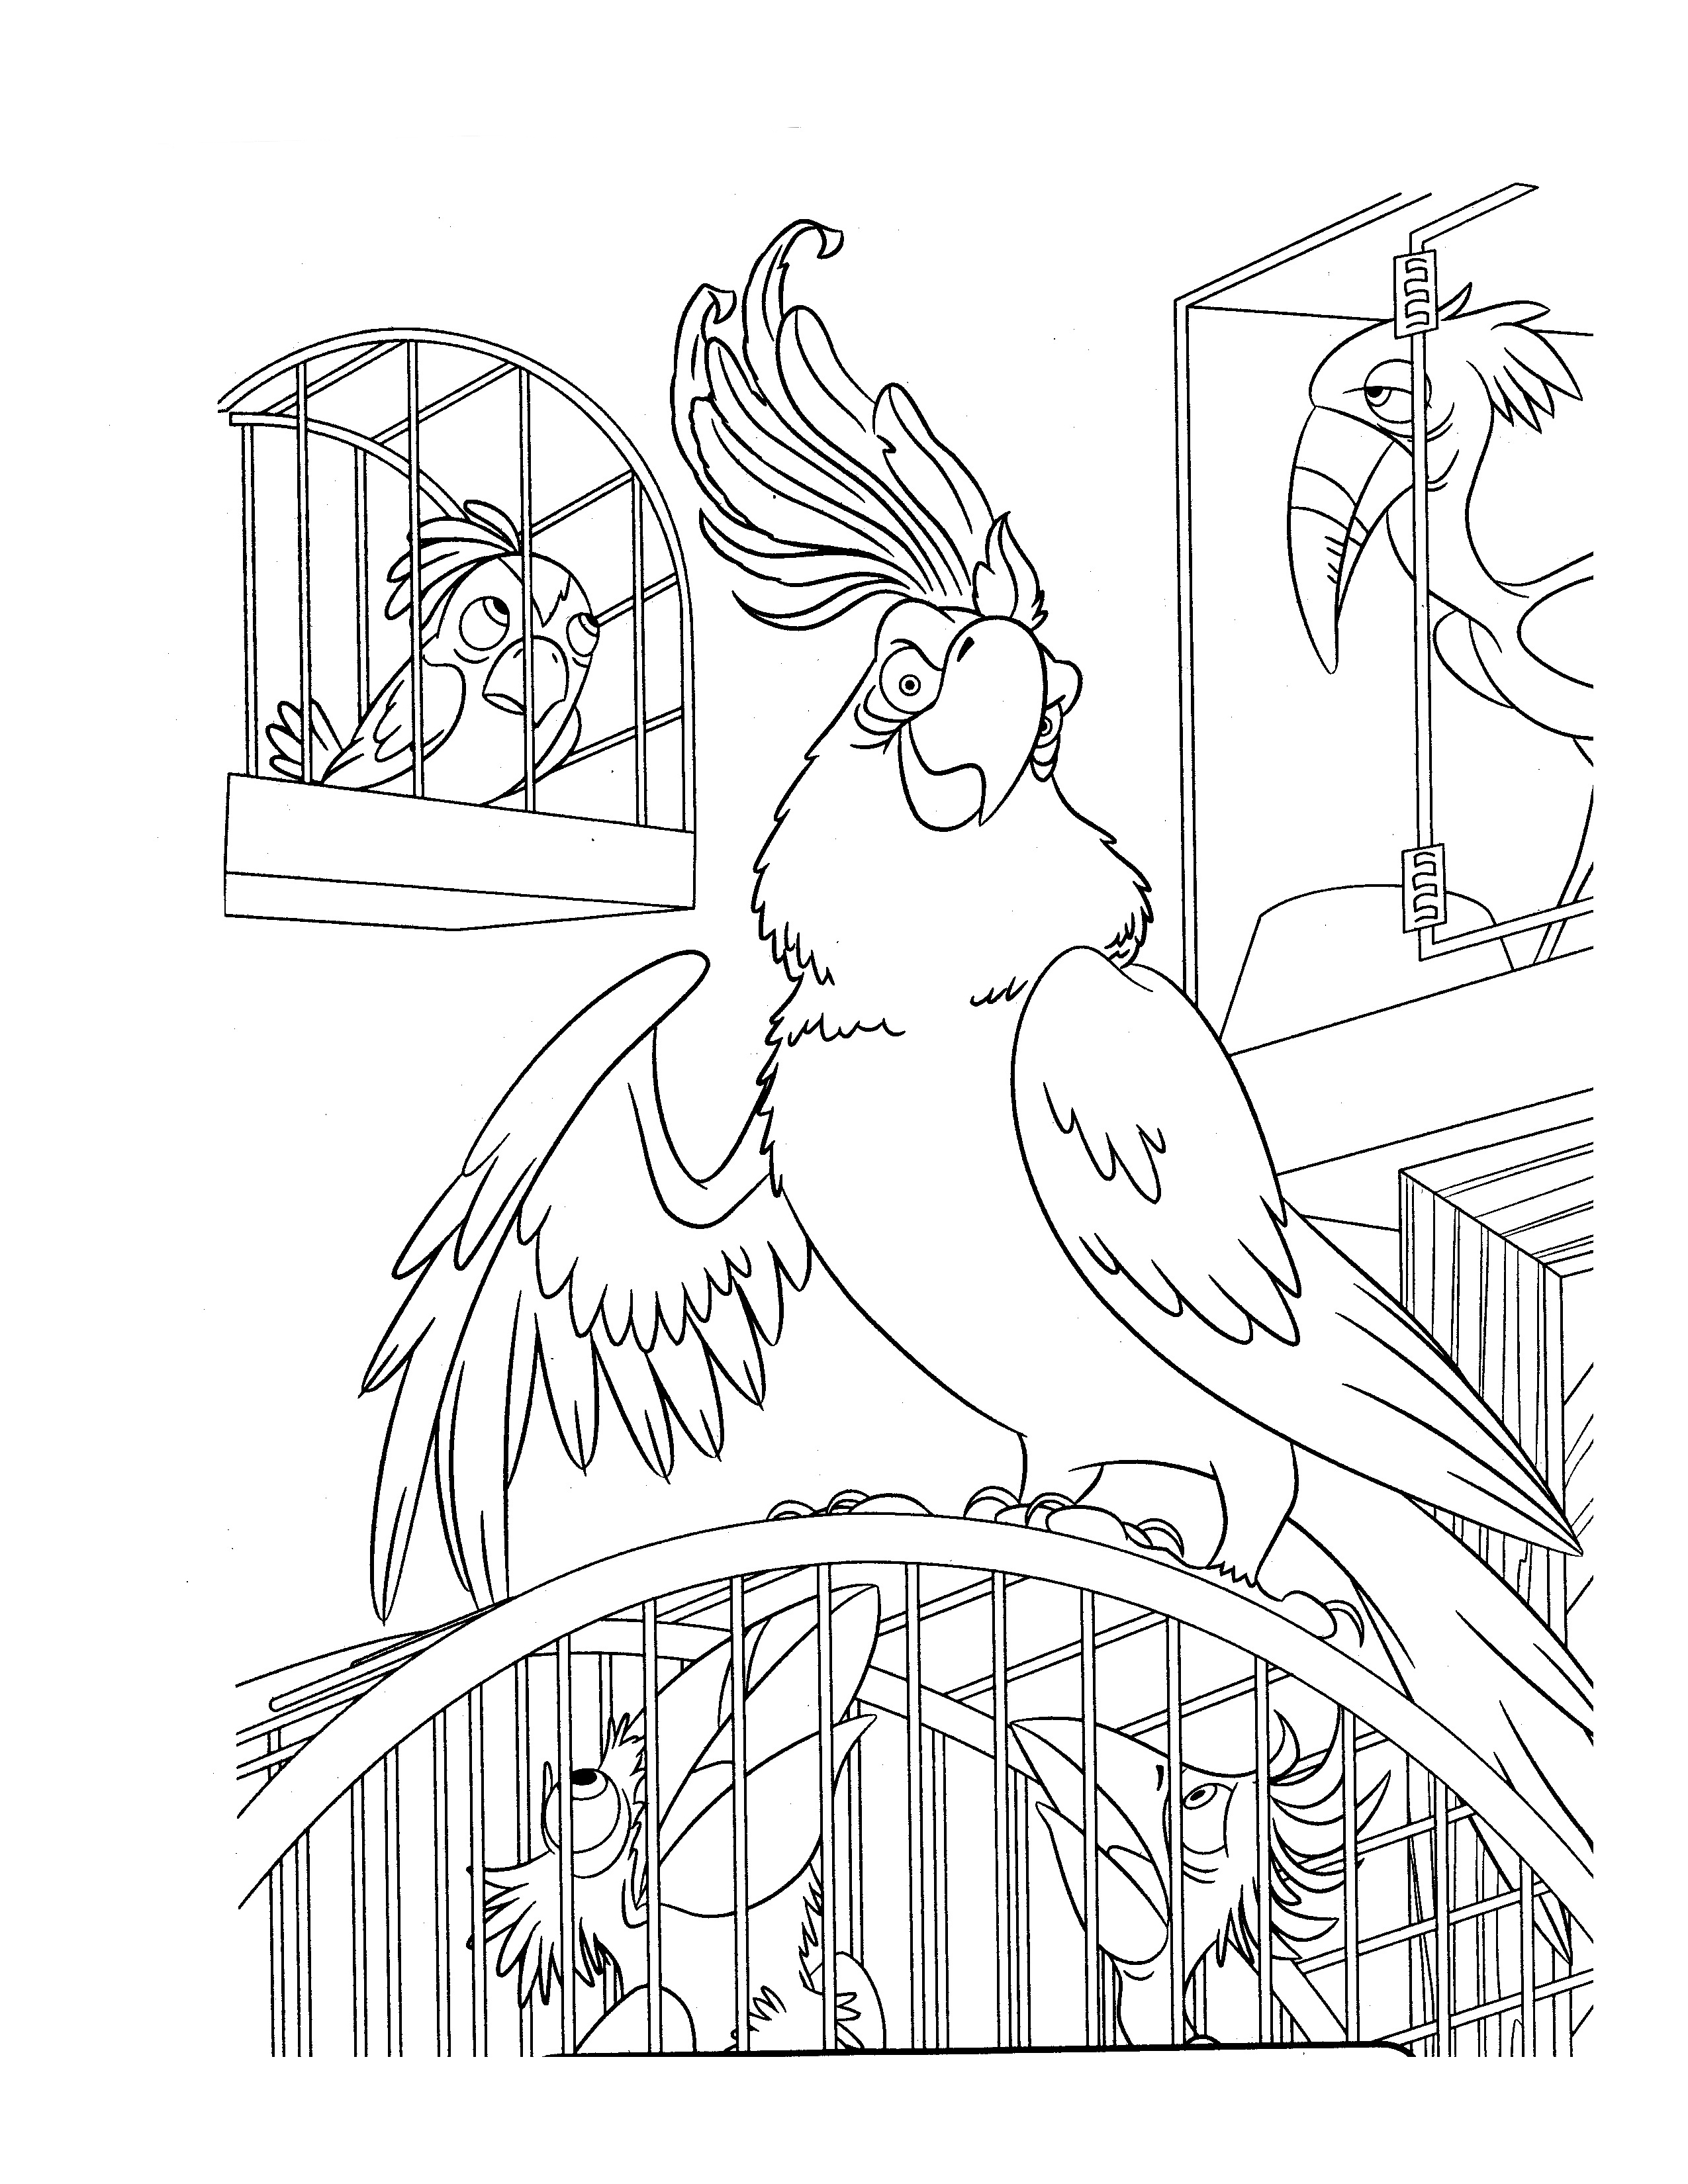 Rio Coloring Page To Download For Free